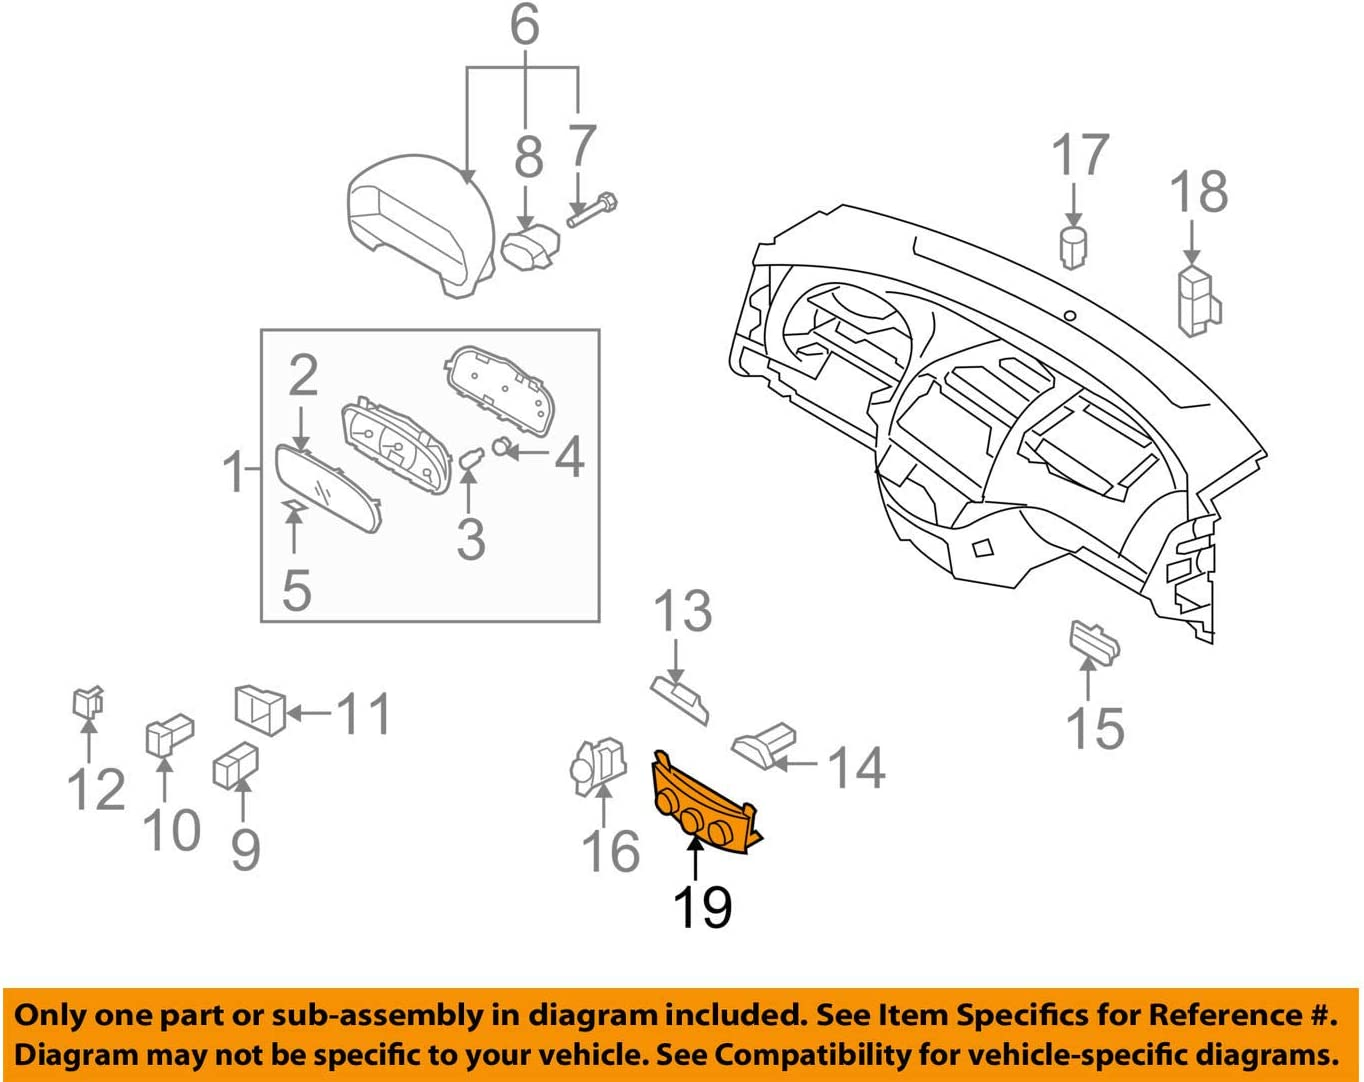 Genuine Hyundai 97250-2H011-9K Assembly service Control 2021 spring and summer new Heater